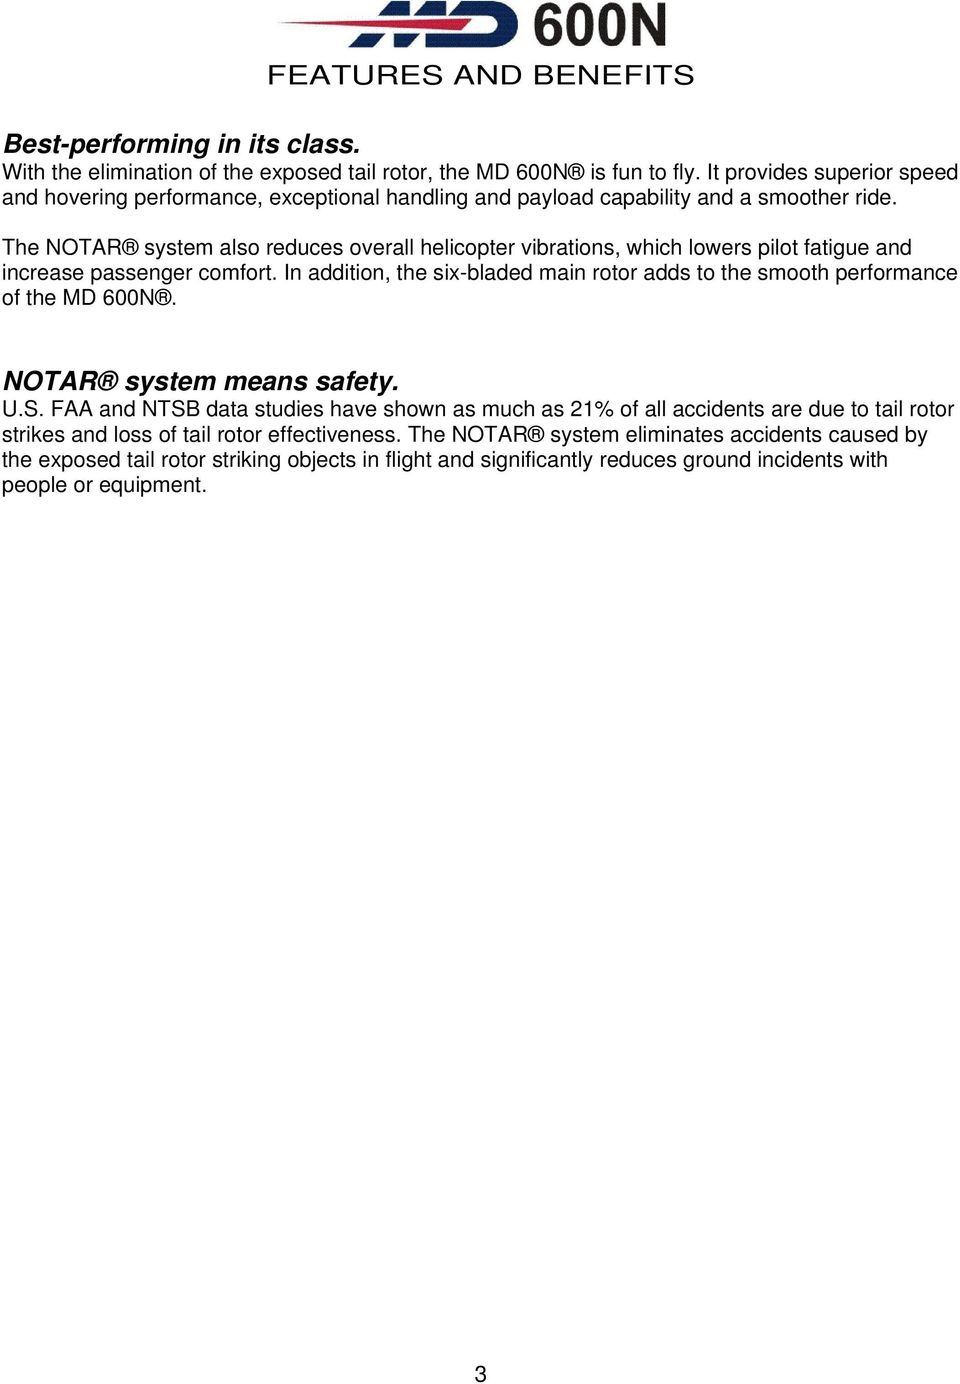 The NOTAR system also reduces overall helicopter vibrations, which lowers pilot fatigue and increase passenger comfort.